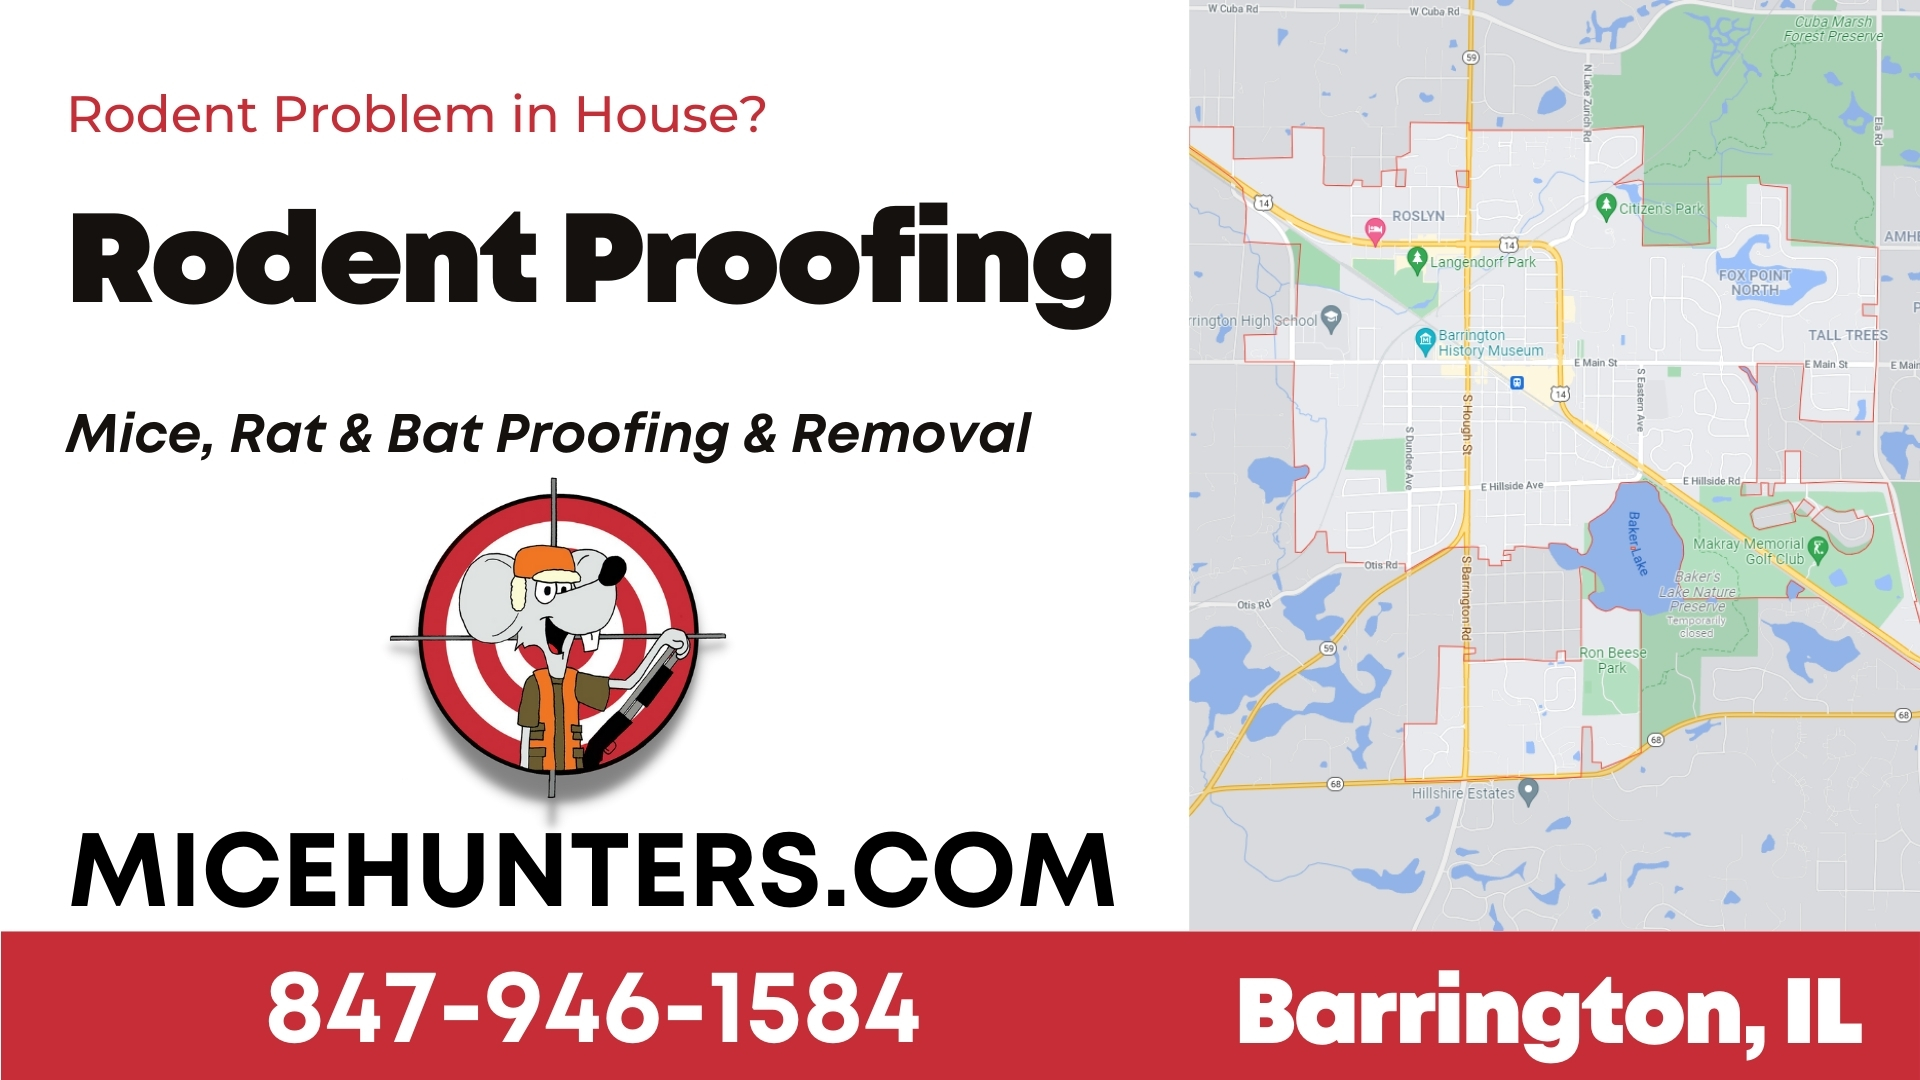 Barrington Rodent and Mice Proofing Exterminator